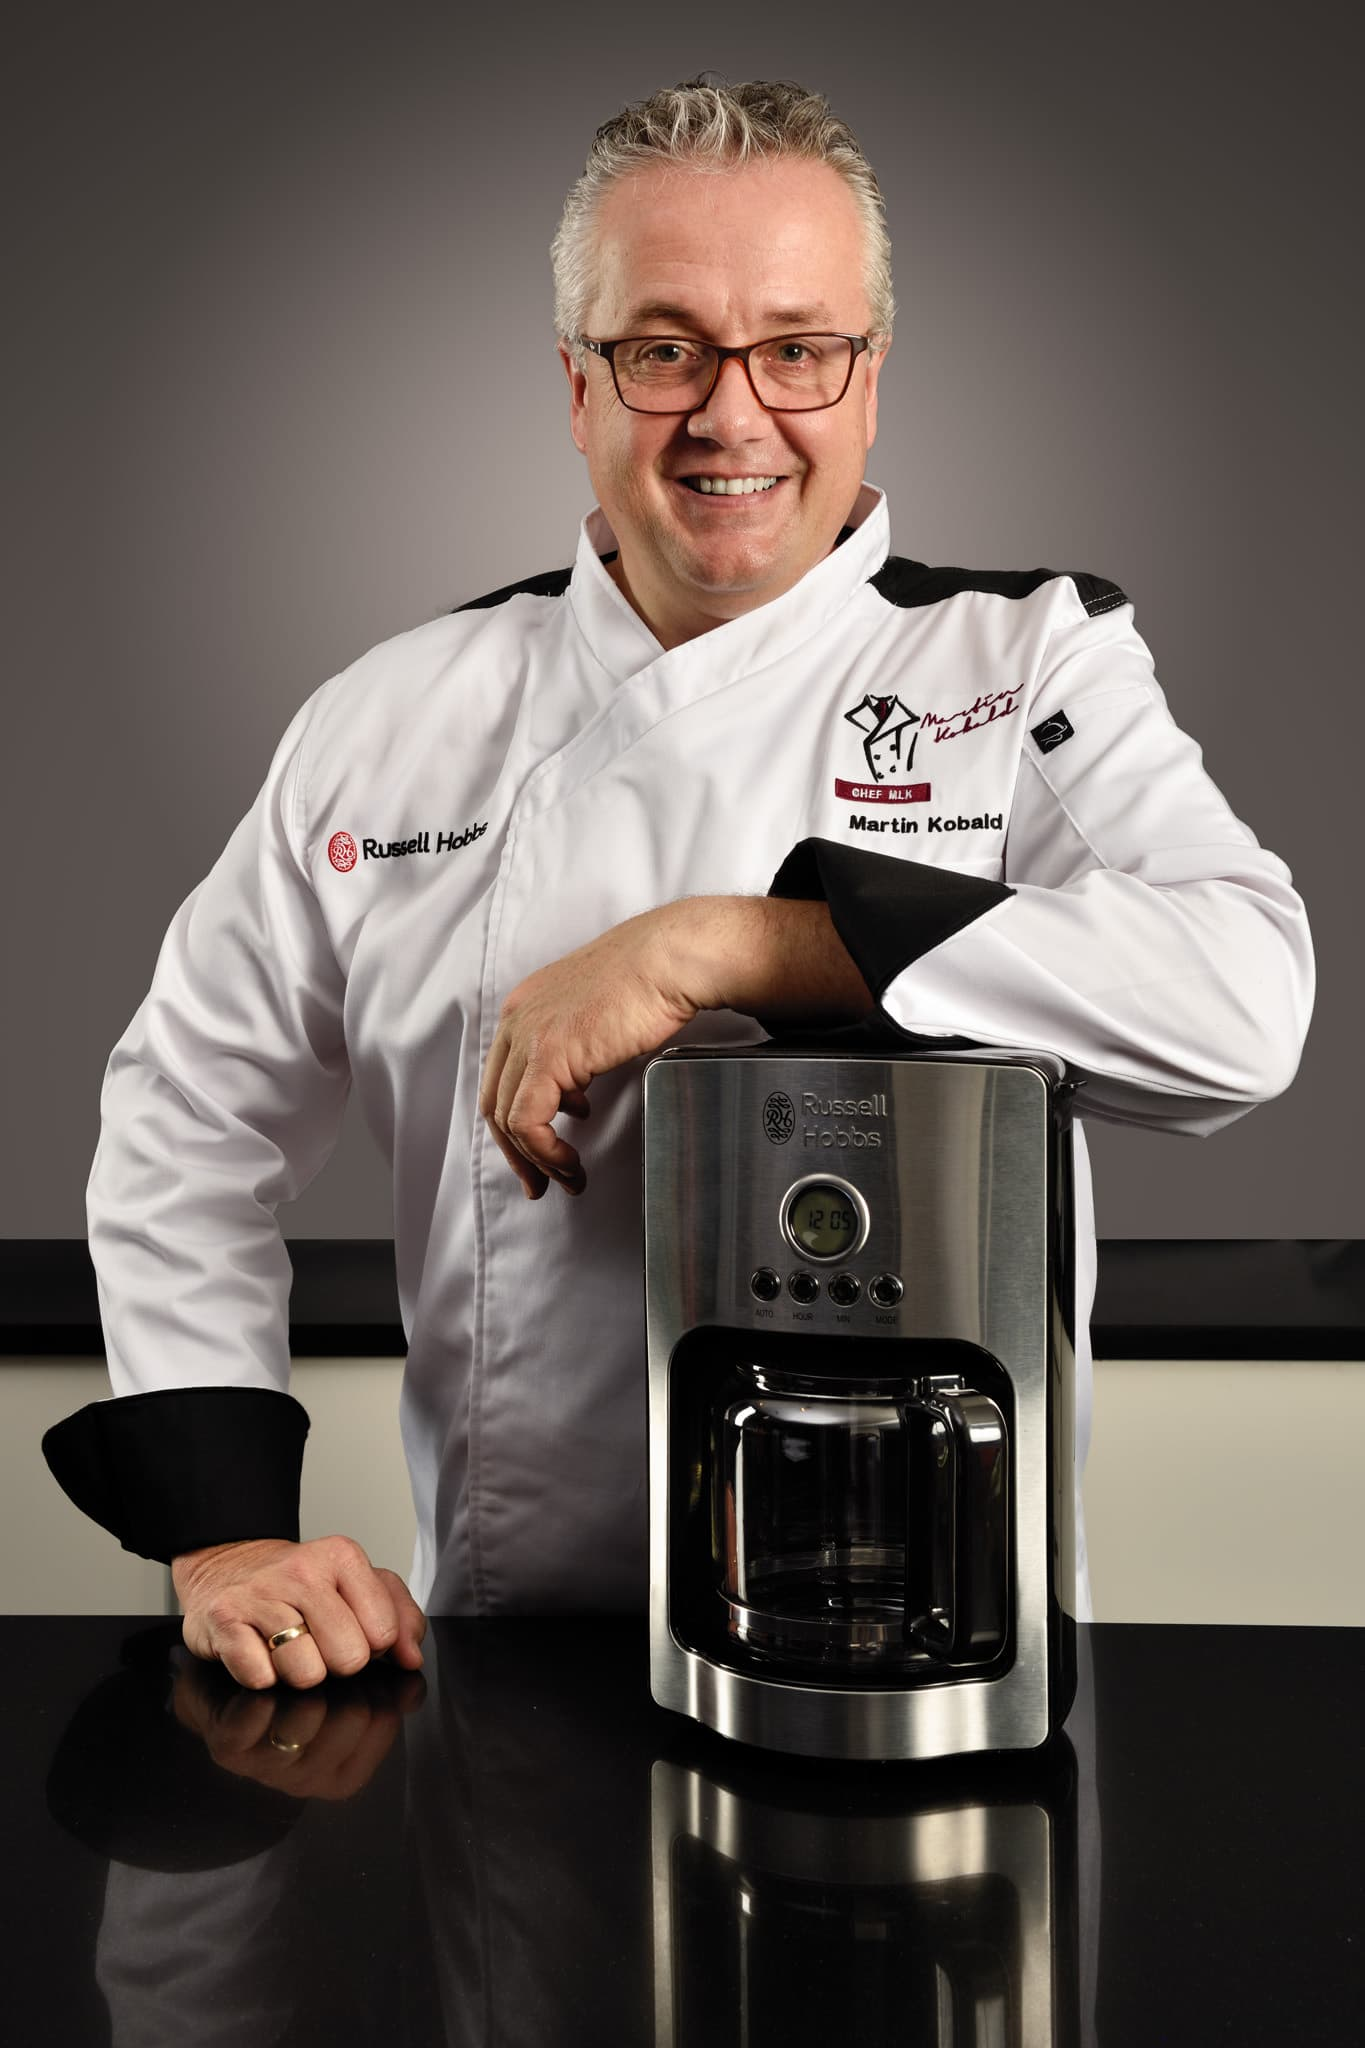 Headshot - Fourways, Johannesburg - Chef Martin for Russel Hobbs